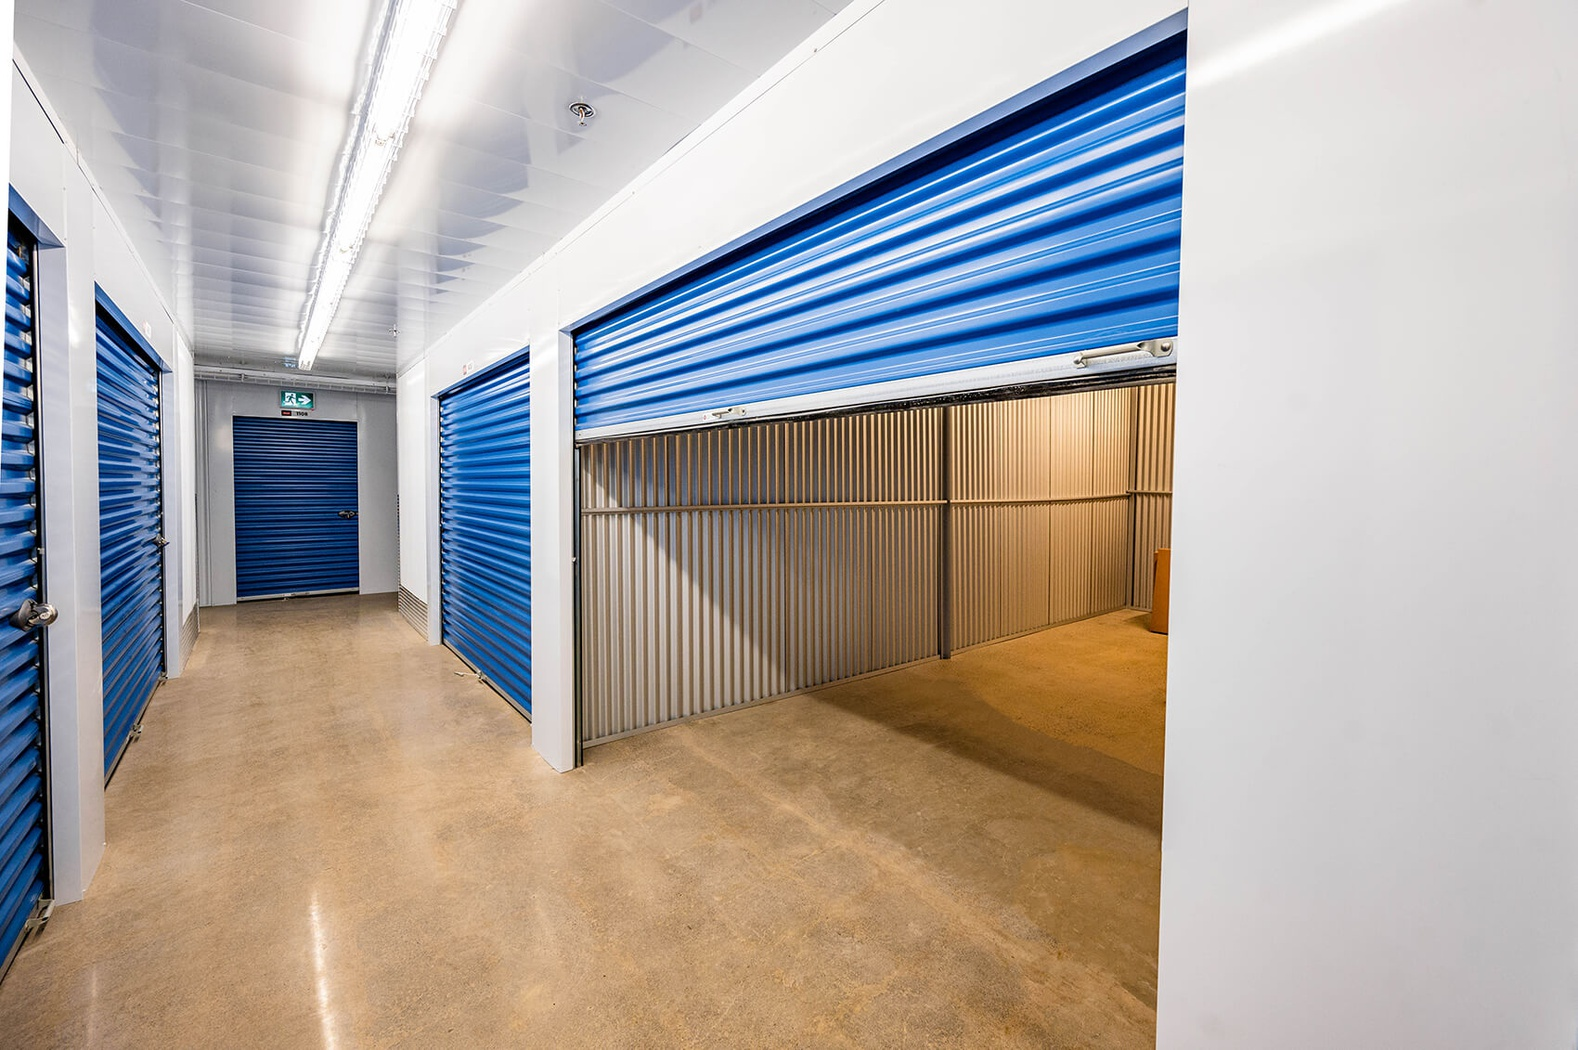 Rent Whitchurch-Stouffville storage units at 12230 Kennedy Road. We offer a wide-range of affordable self storage units and your first 4 weeks are free!